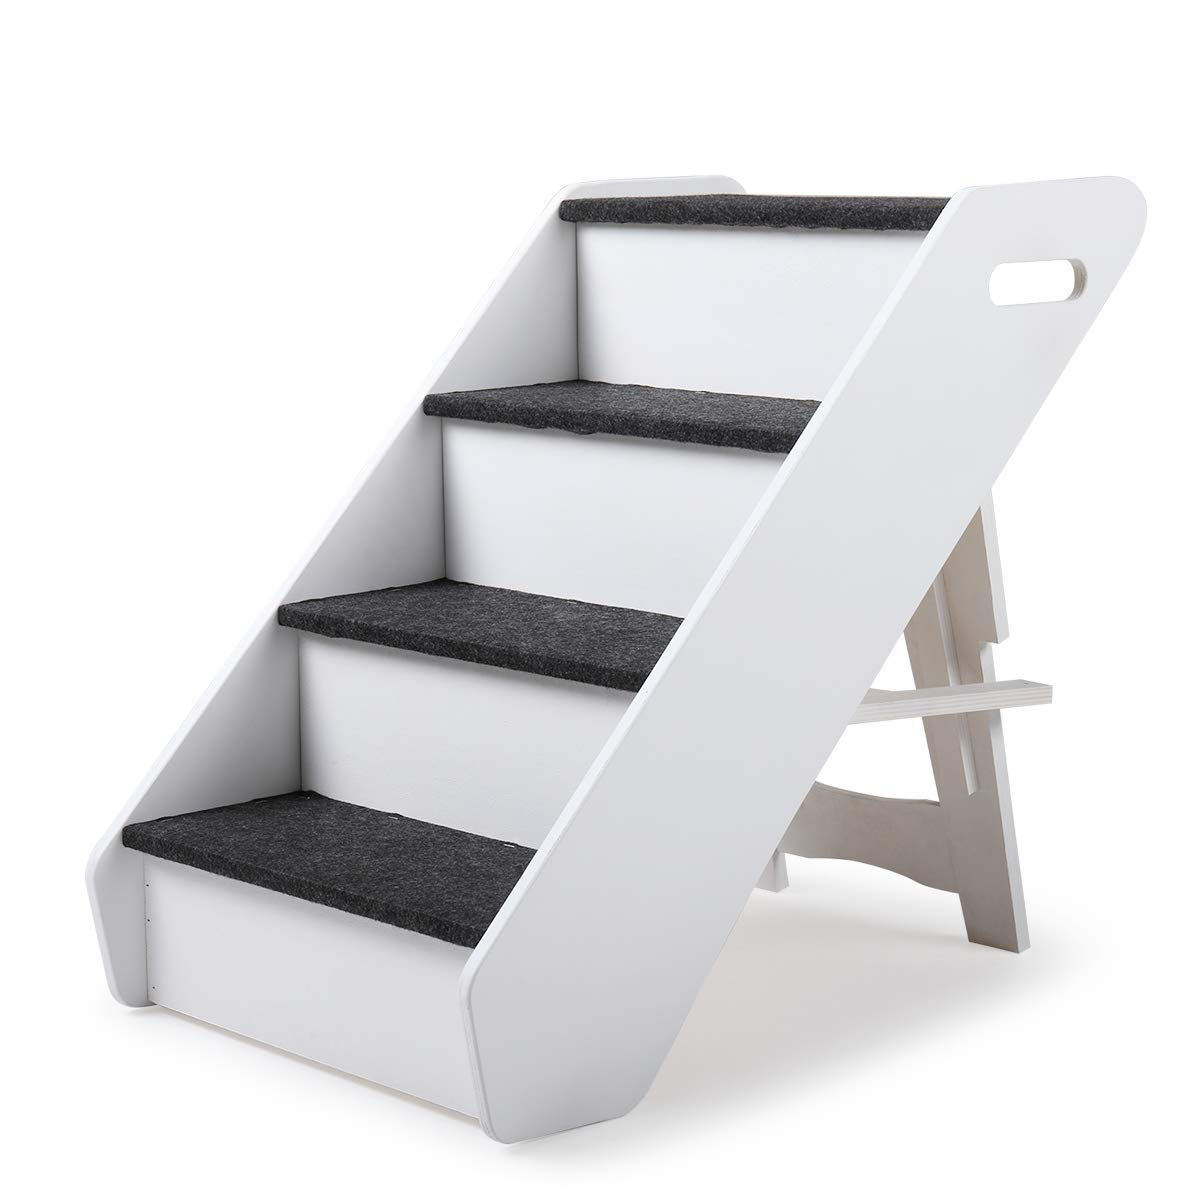 LAZYMOON Dog Steps 4 Steps for High Bed Pet Stairs Small Dogs Cats Ramp Ladder